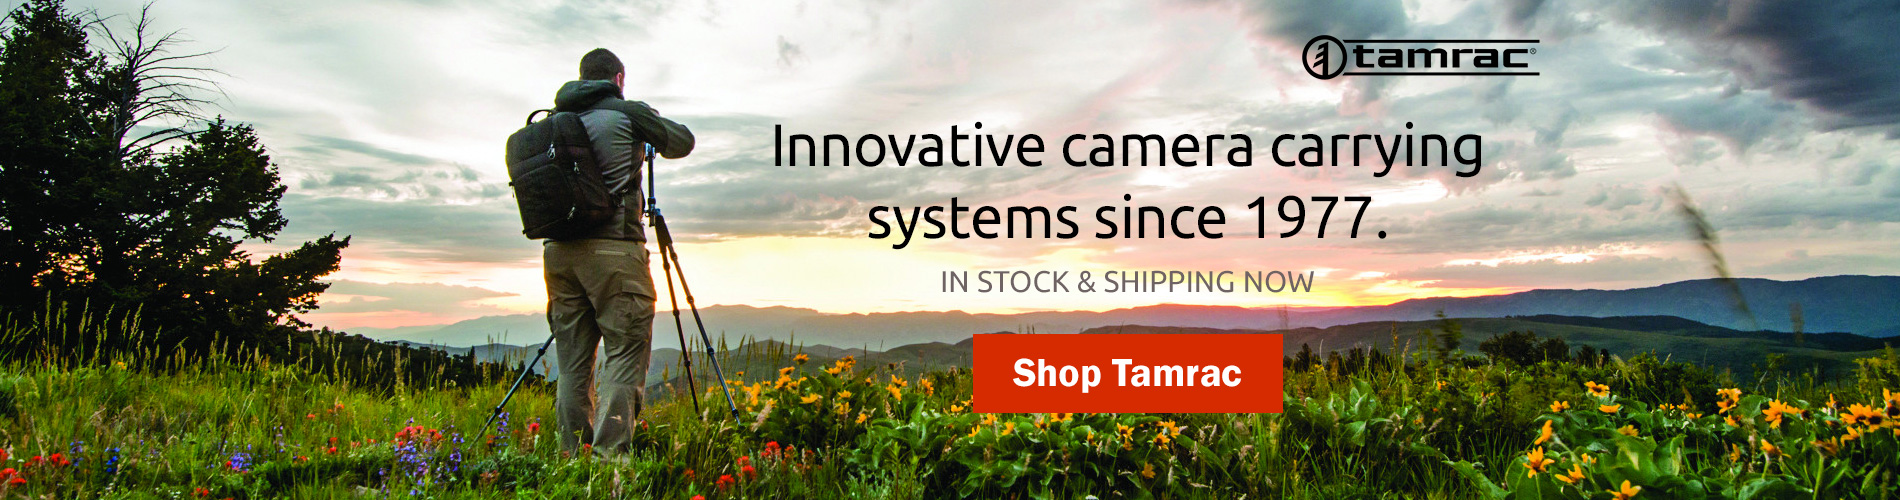 Tamrac Camera Bags - Innovative camera carrying systems since 1977. In stock and shipping now! Shop Tamrac >